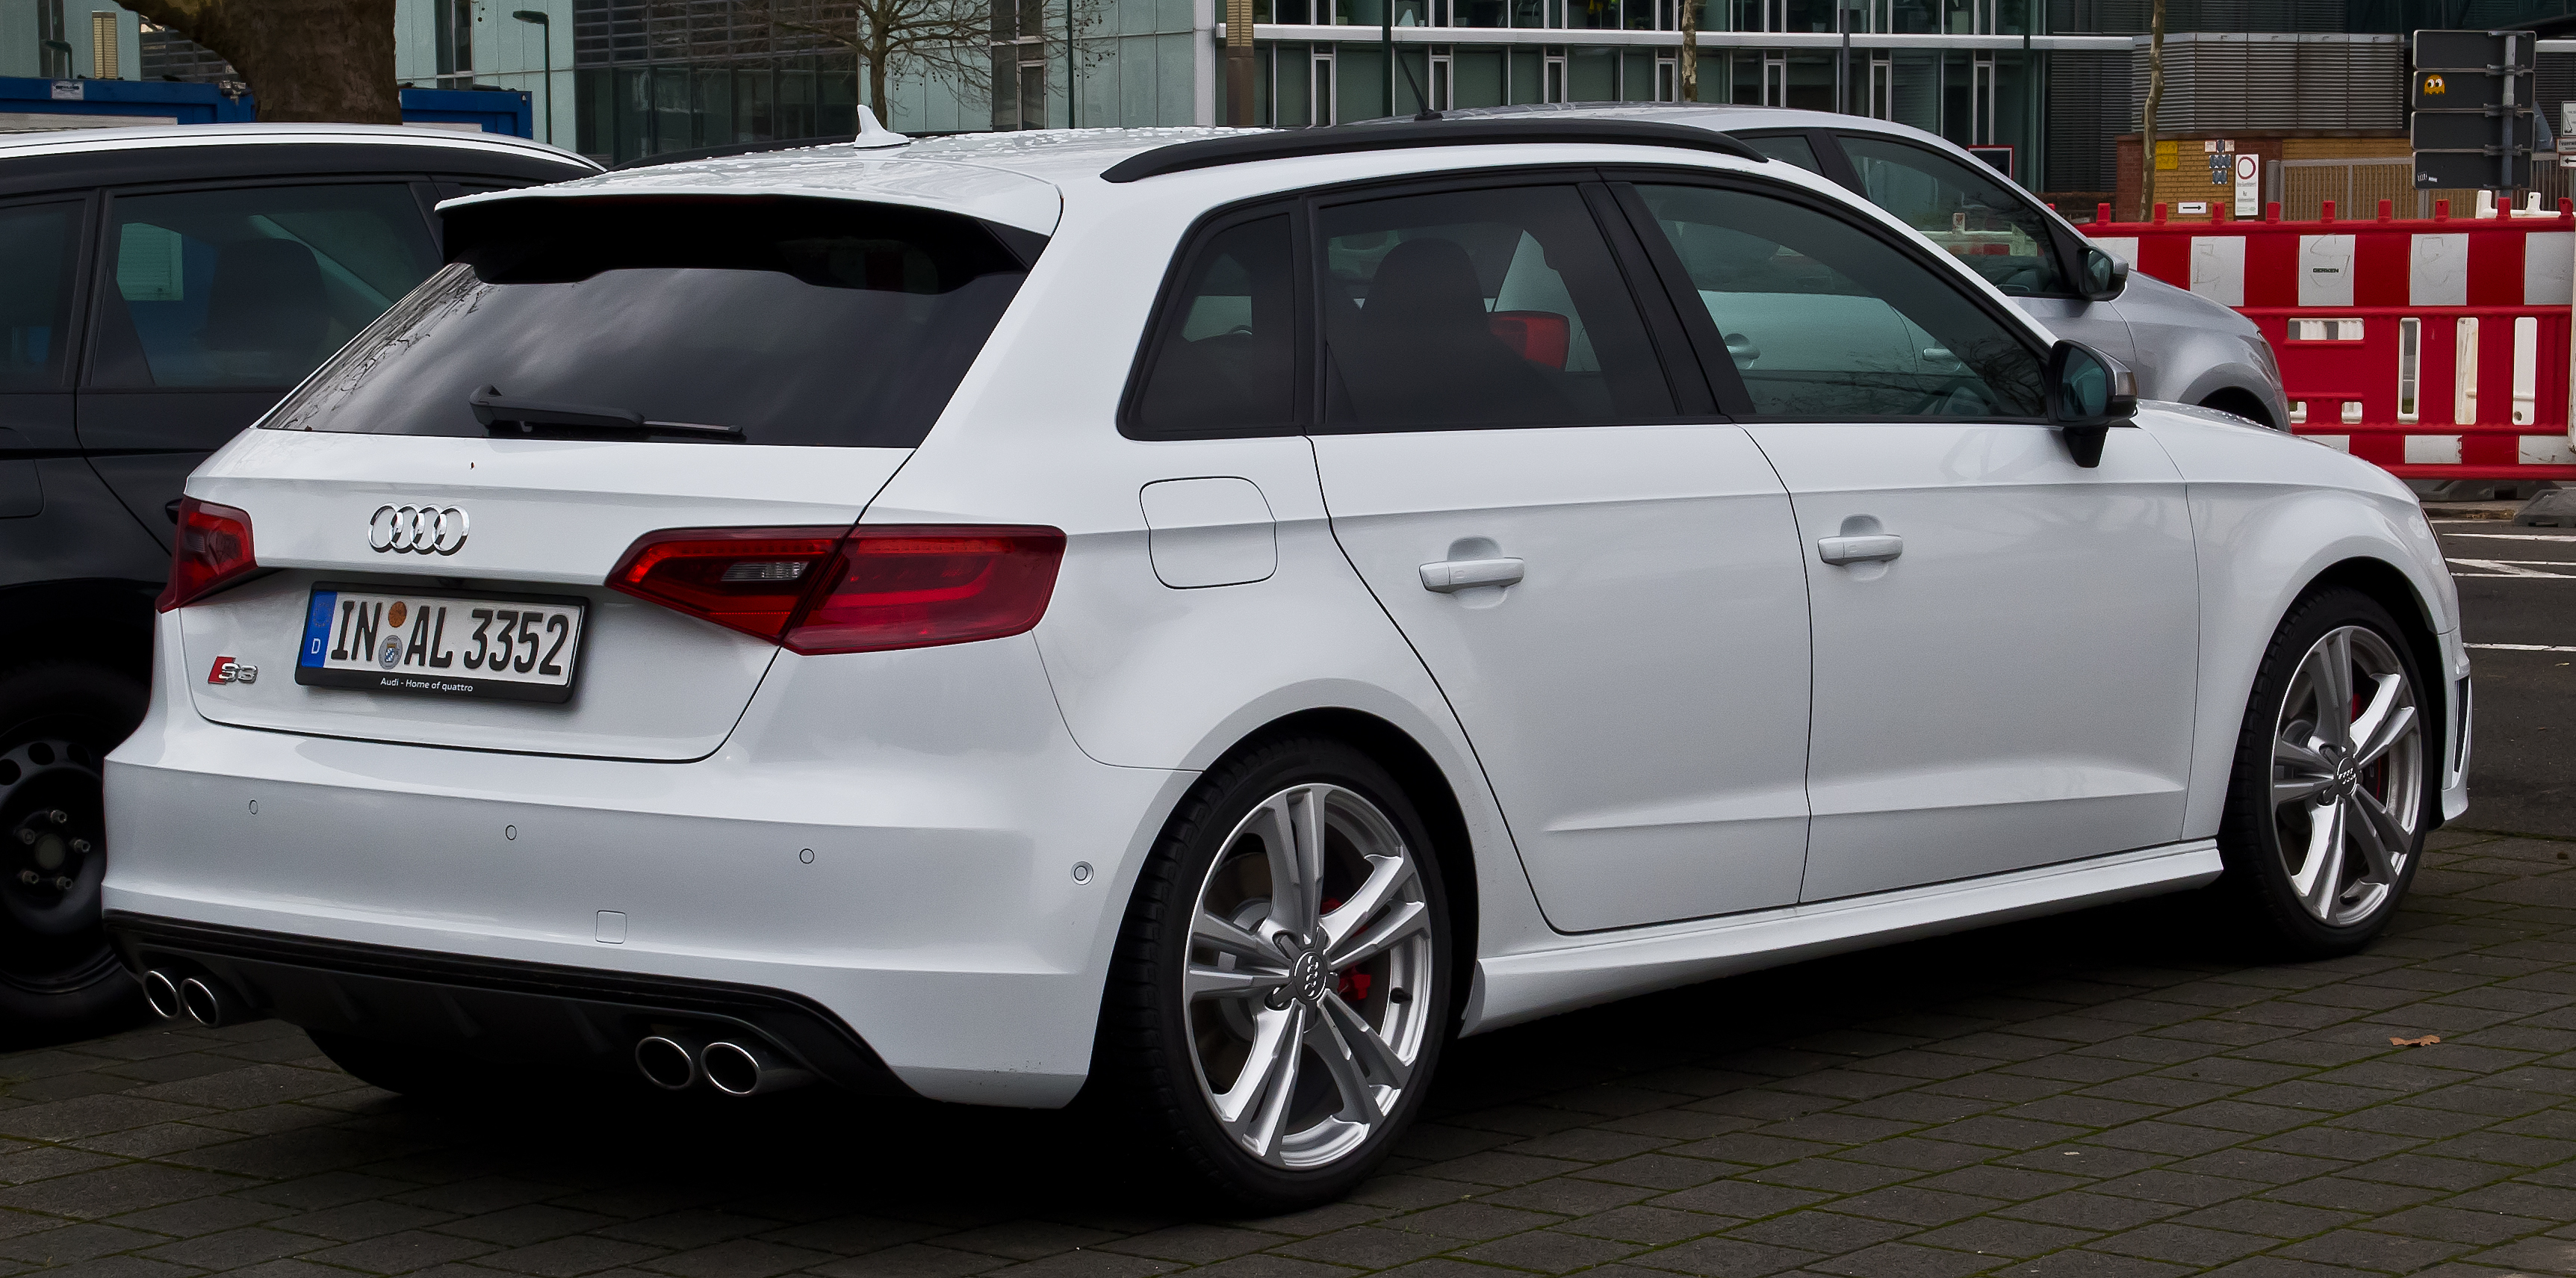 file audi s3 sportback 8v heckansicht 6 m rz 2016 d wikimedia commons. Black Bedroom Furniture Sets. Home Design Ideas